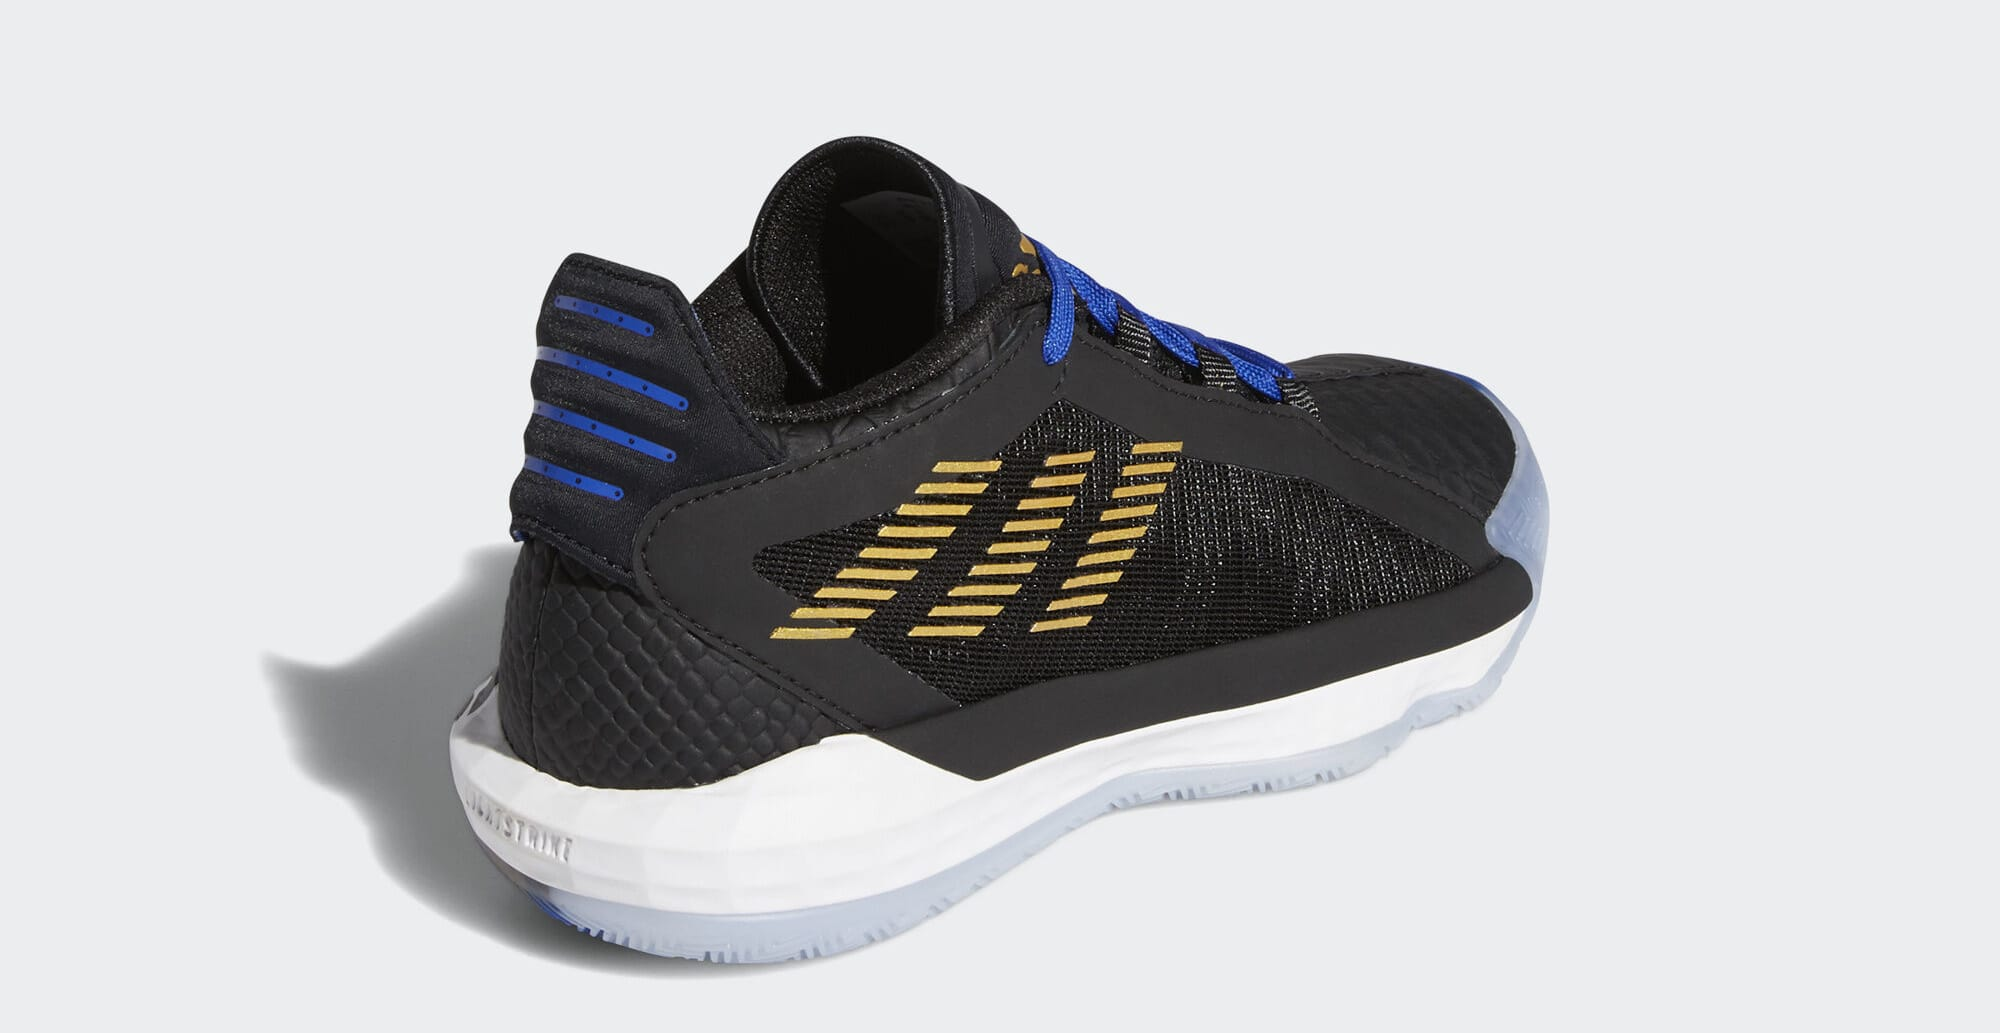 Adidas Dame 6 'Stone Cold' FV4214 (Heel)